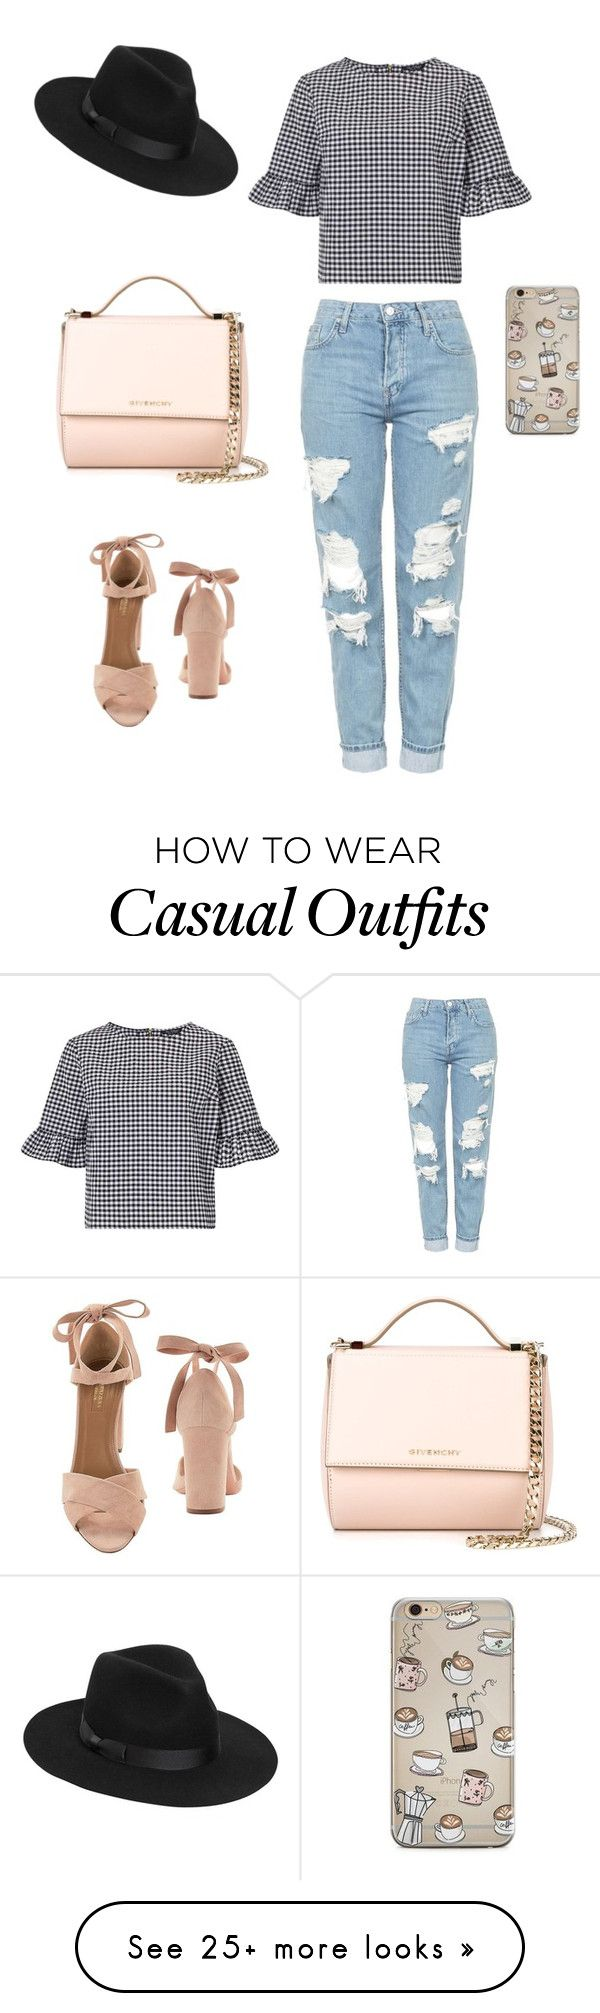 """Casual day basics, black, white and nude"" by emilielouisse on Polyvore featuring Topshop, Miss Selfridge, Lack of Color, Givenchy and Aquazzura"